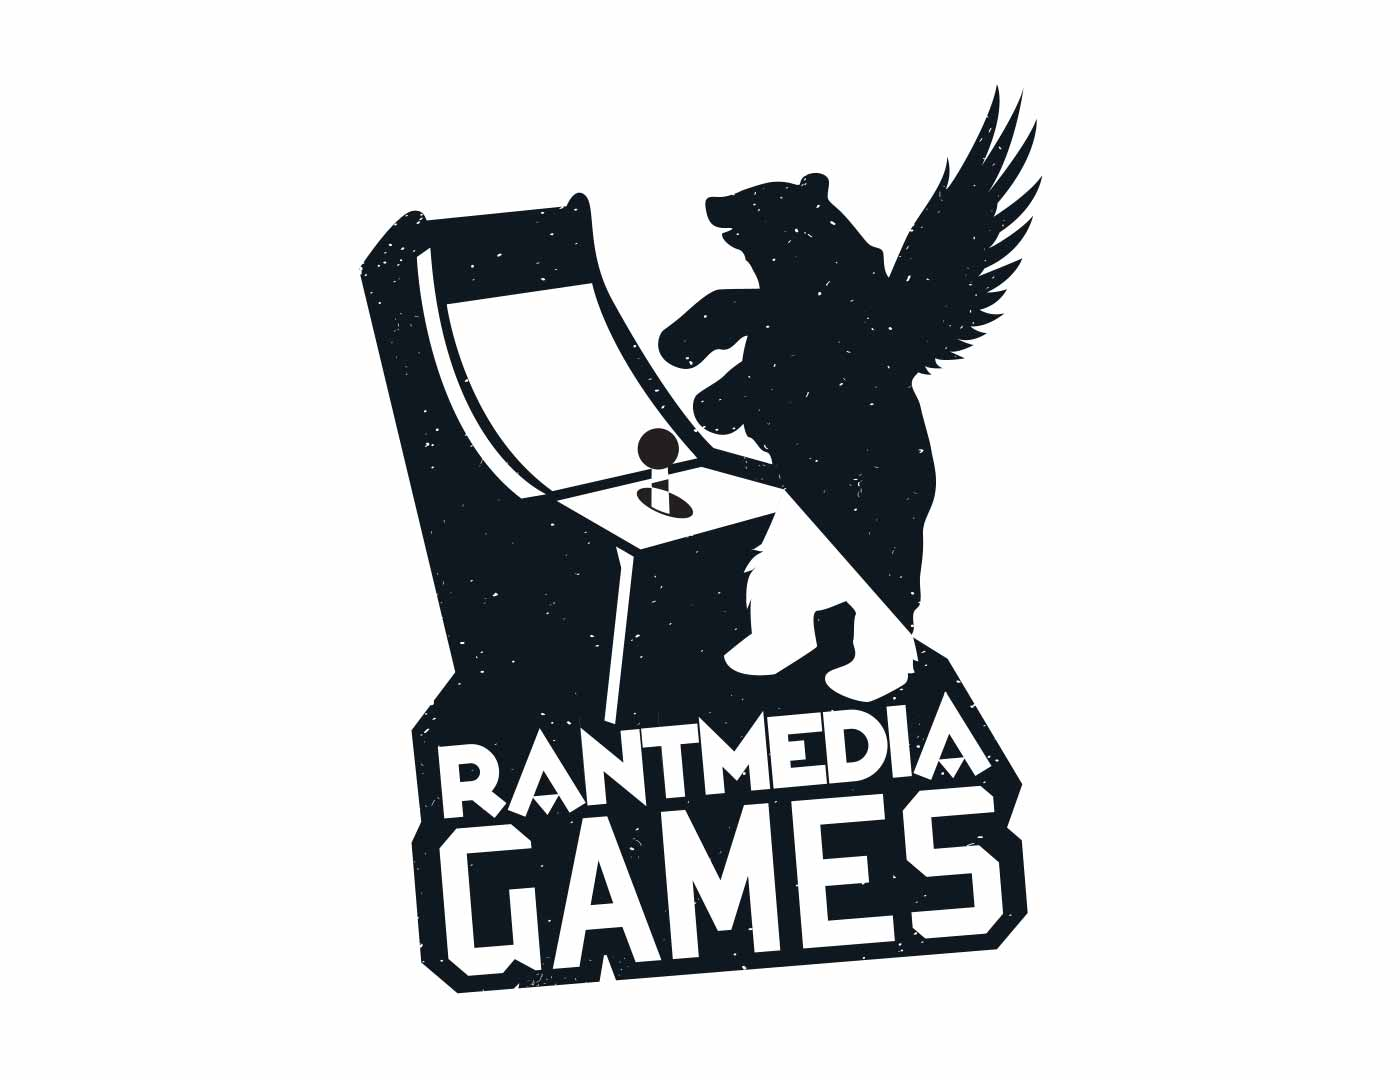 Rantmedia Games ltd logo